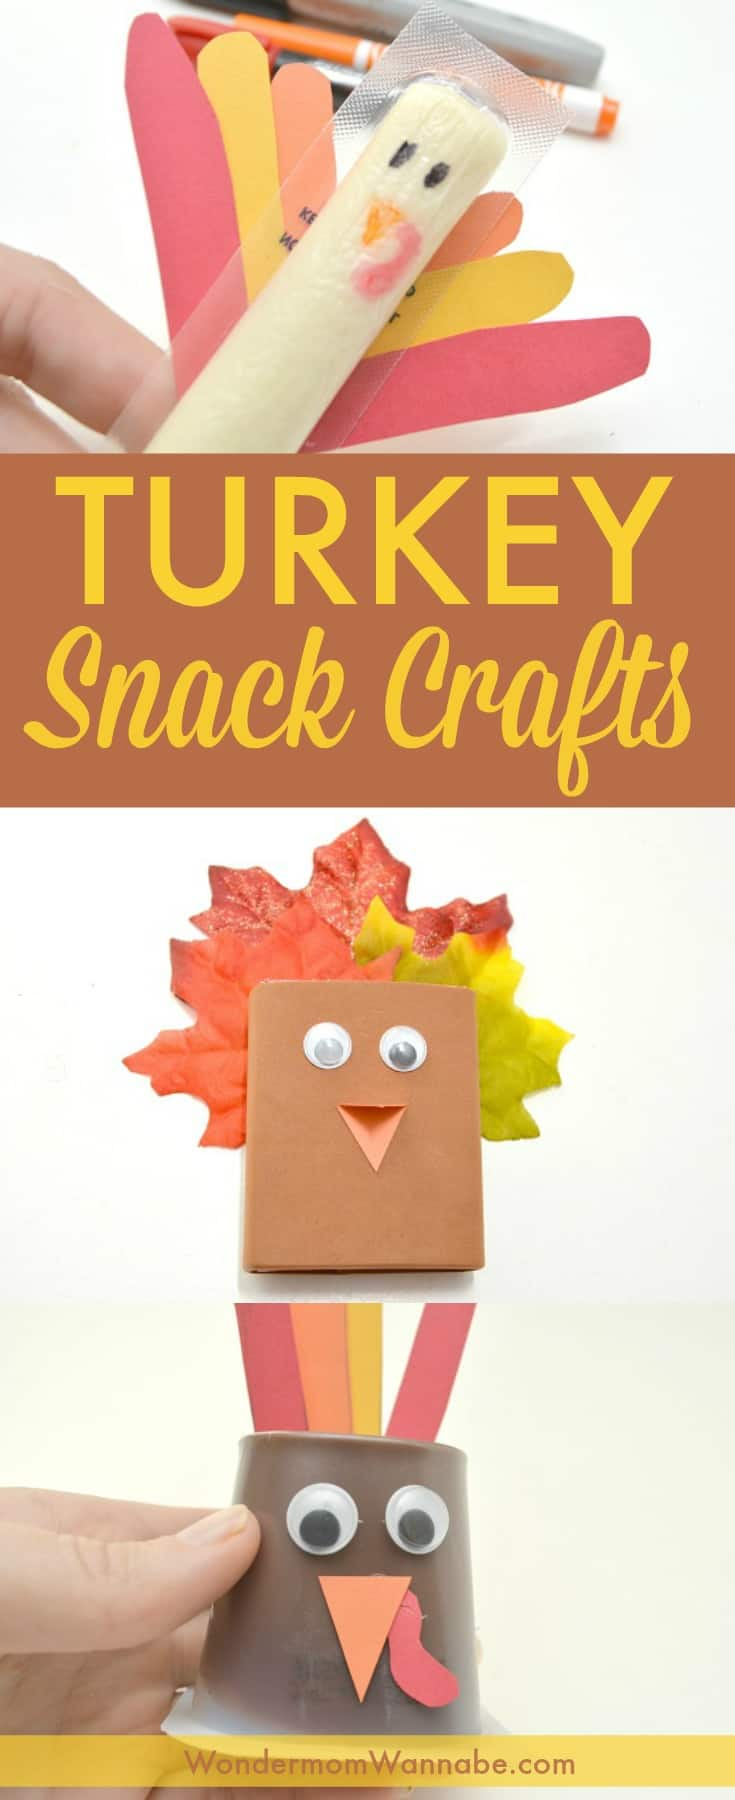 These turkey-themed Thanksgiving snacks are such a fun way to get kids excited about Thanksgiving! Put them in your kids' lunches leading up to the big day. #thanksgiving #turkey #snacks #forkids via @wondermomwannab